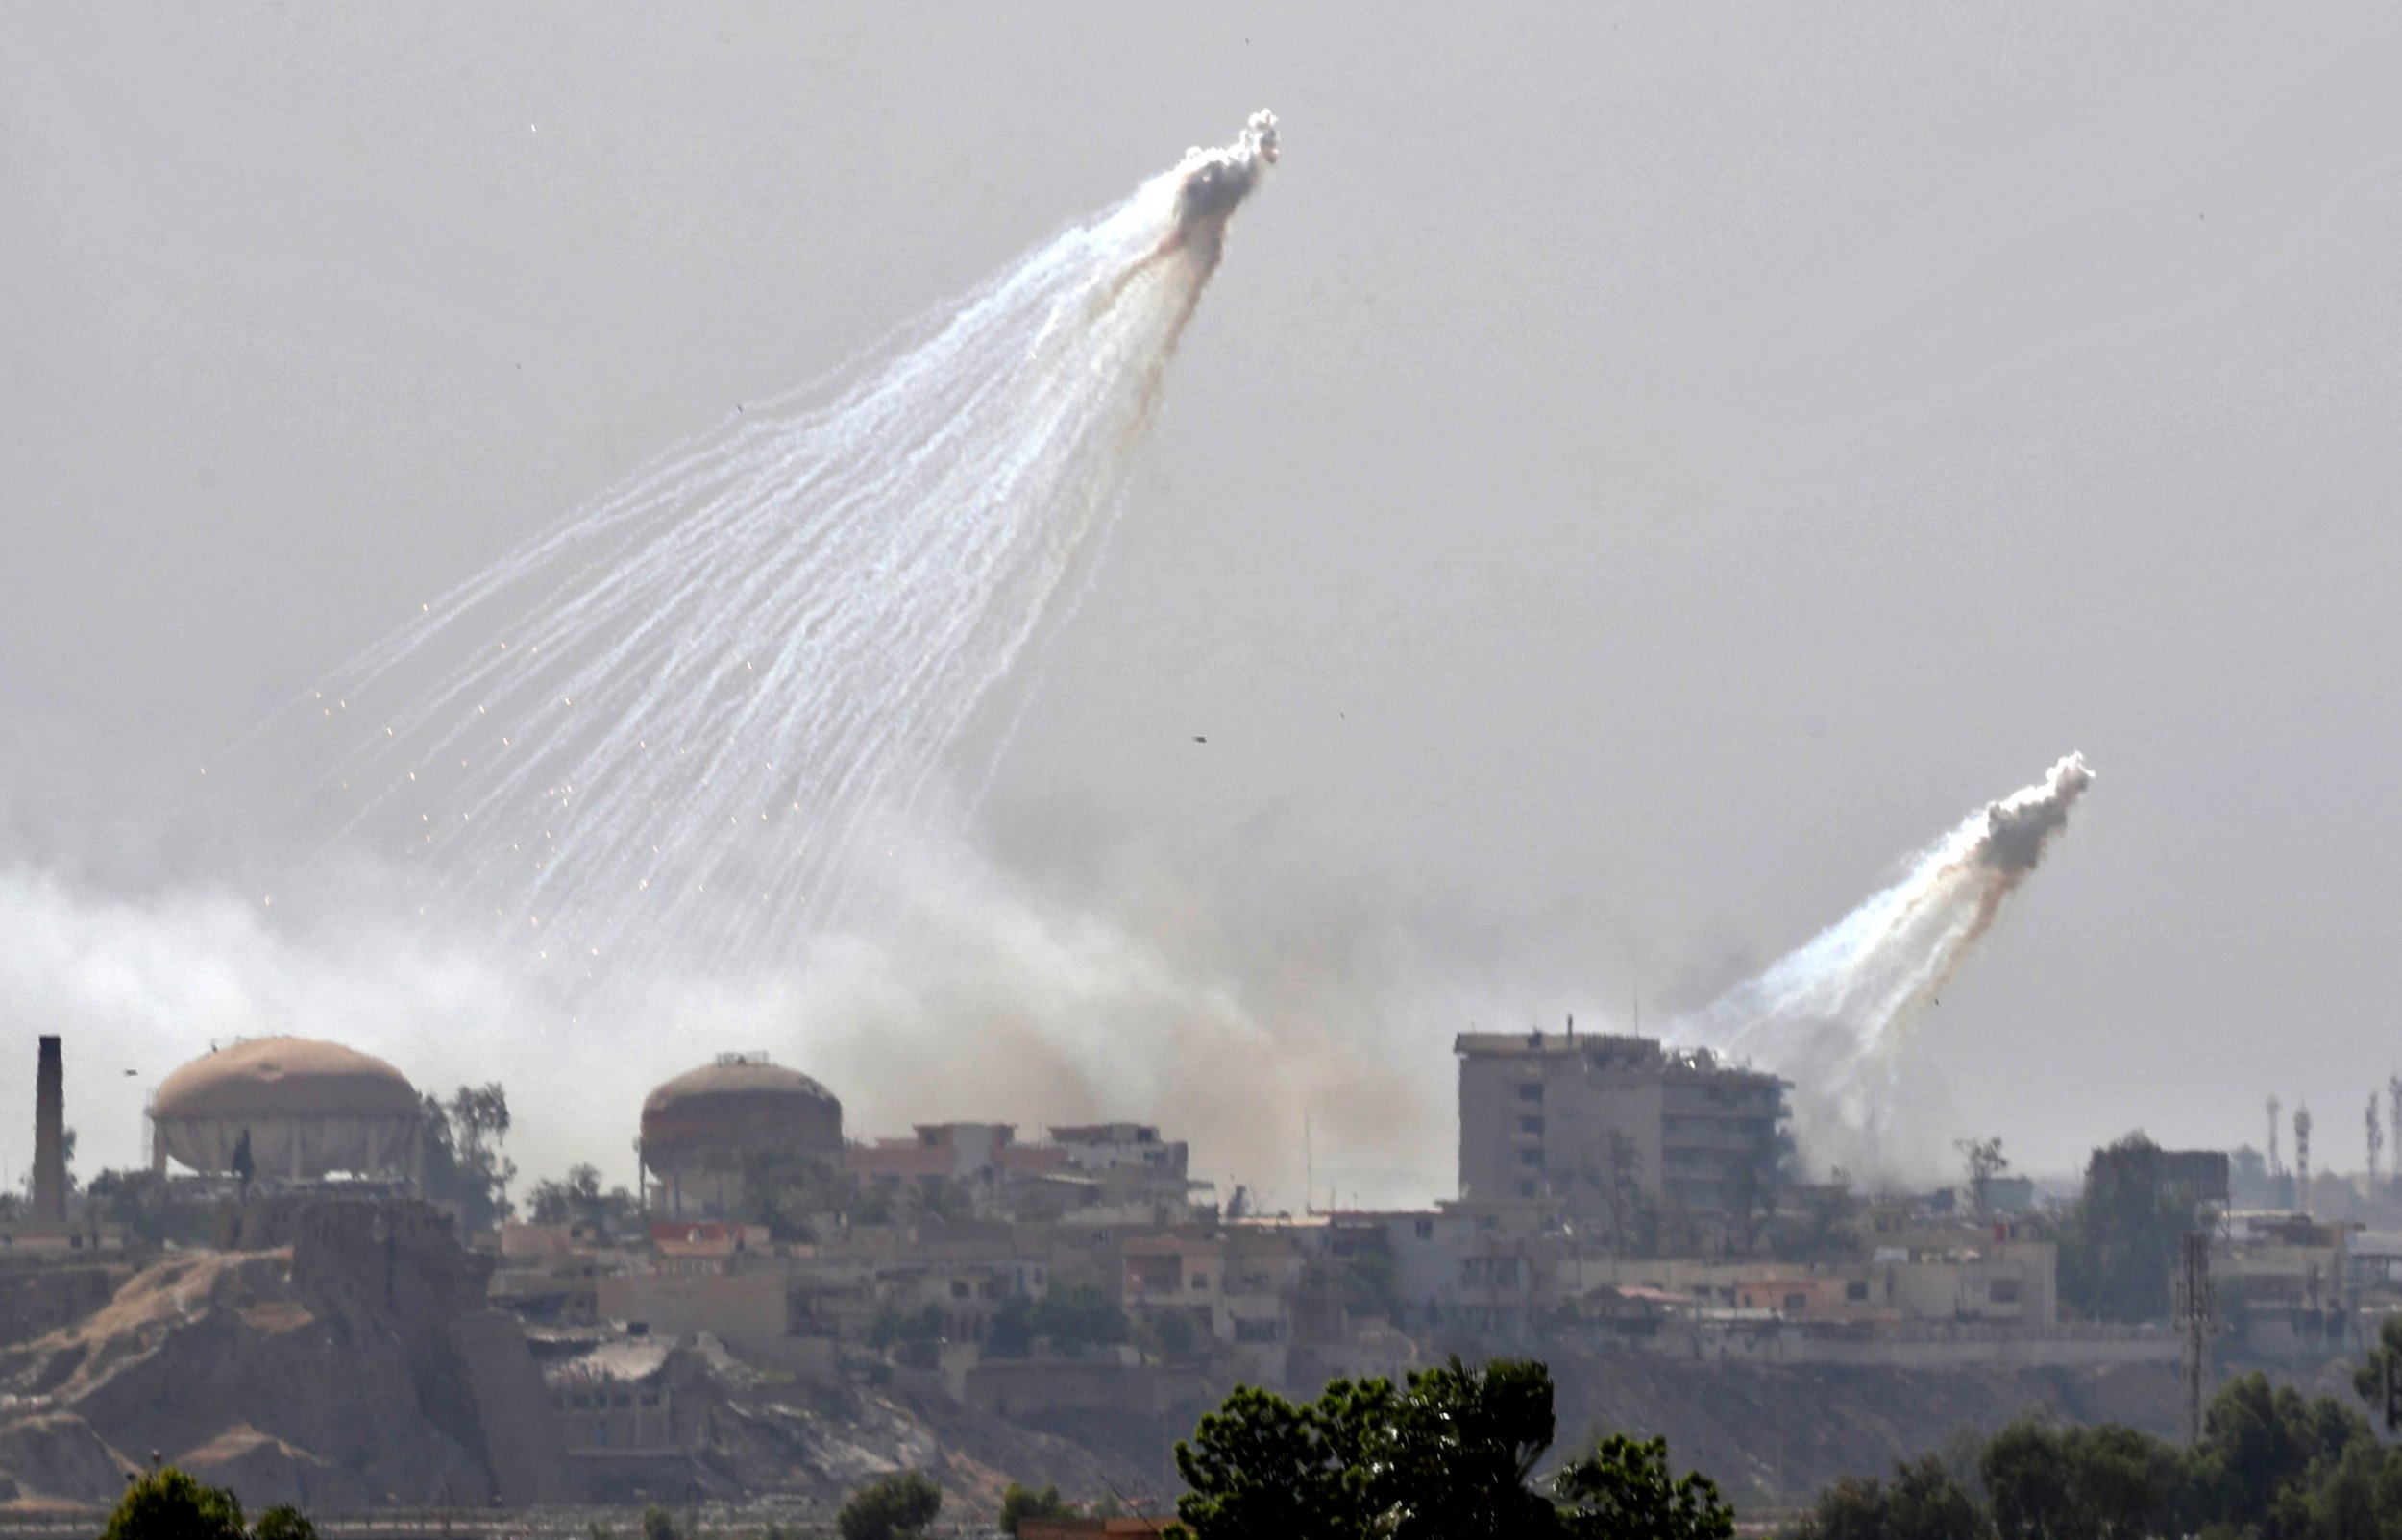 The anti-ISIS coalition is allegedly using white phosphorus, endangering civilians in Iraq and Syria